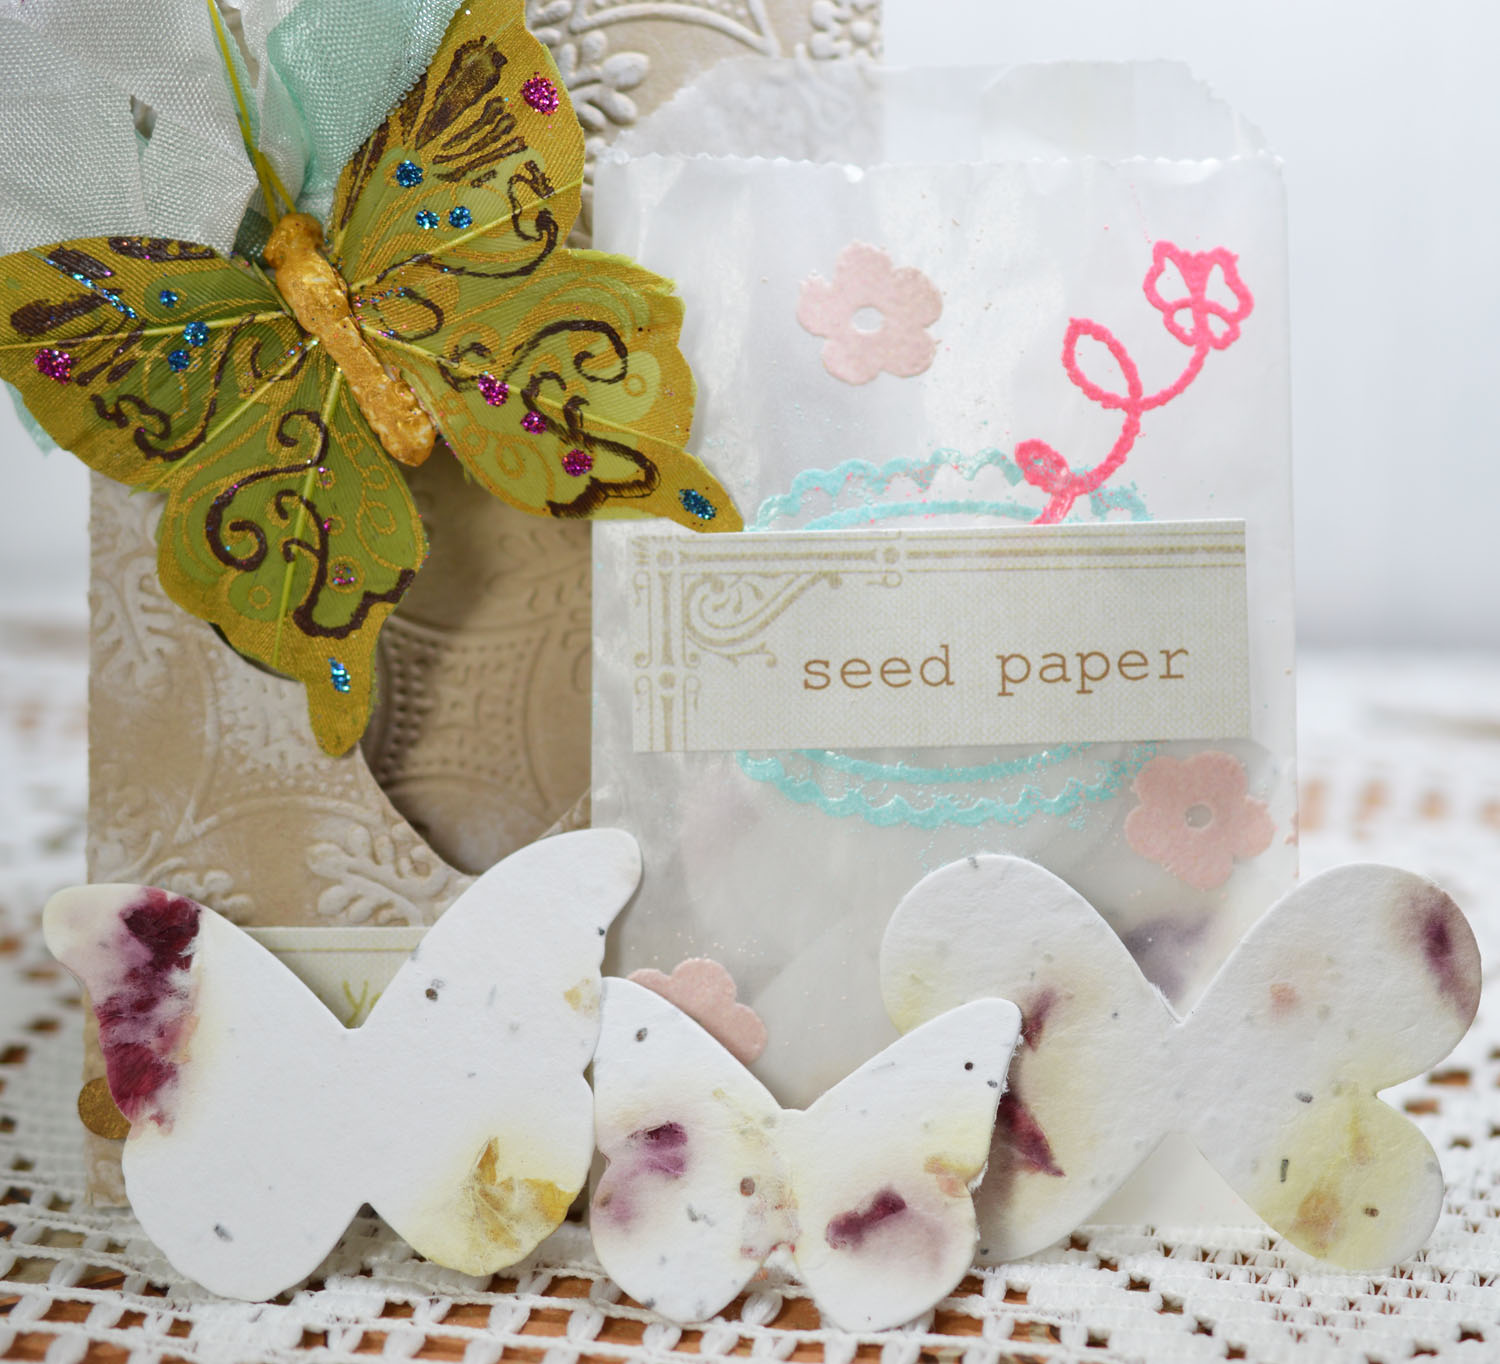 Lori Hairston: Wildflower Seed Paper Mini Event + Giveaways